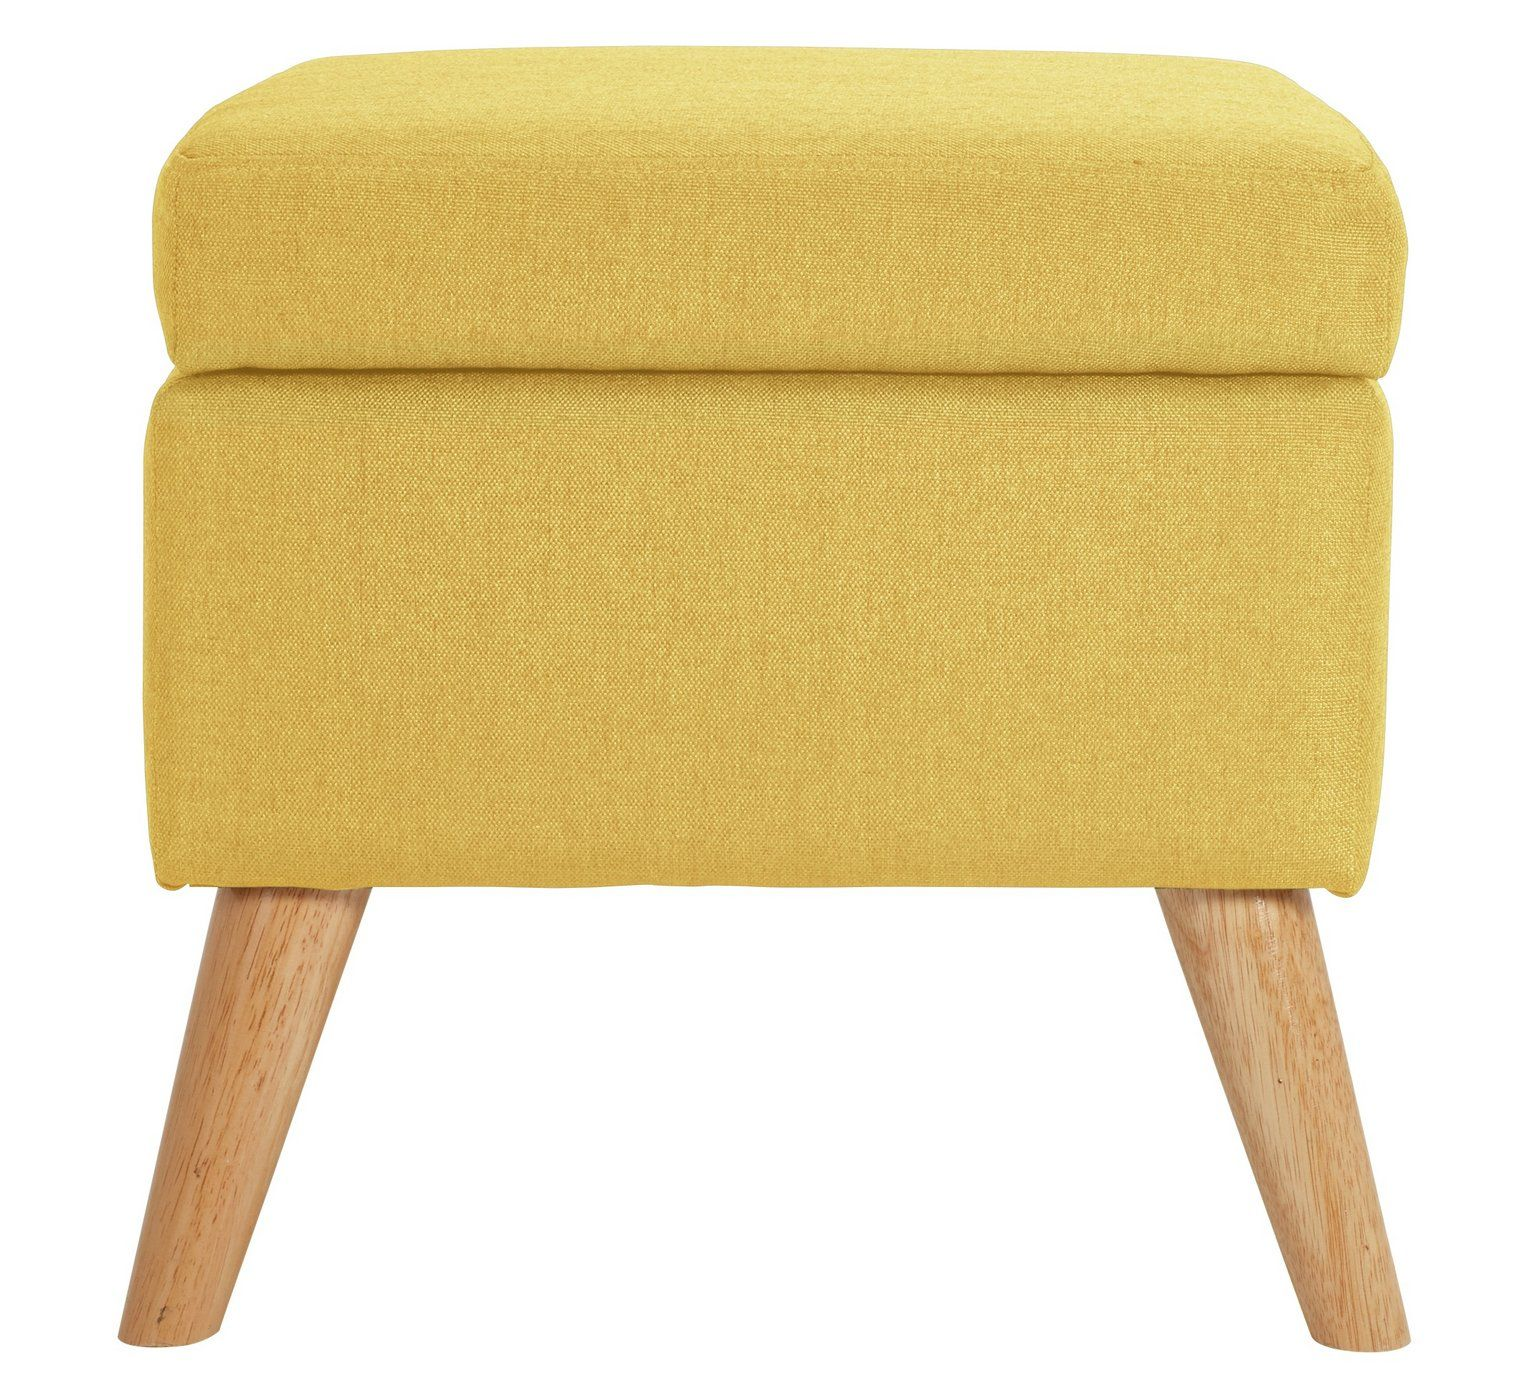 Superb Buy Hygena Lexie Fabric Storage Footstool Yellow At Argos Pdpeps Interior Chair Design Pdpepsorg